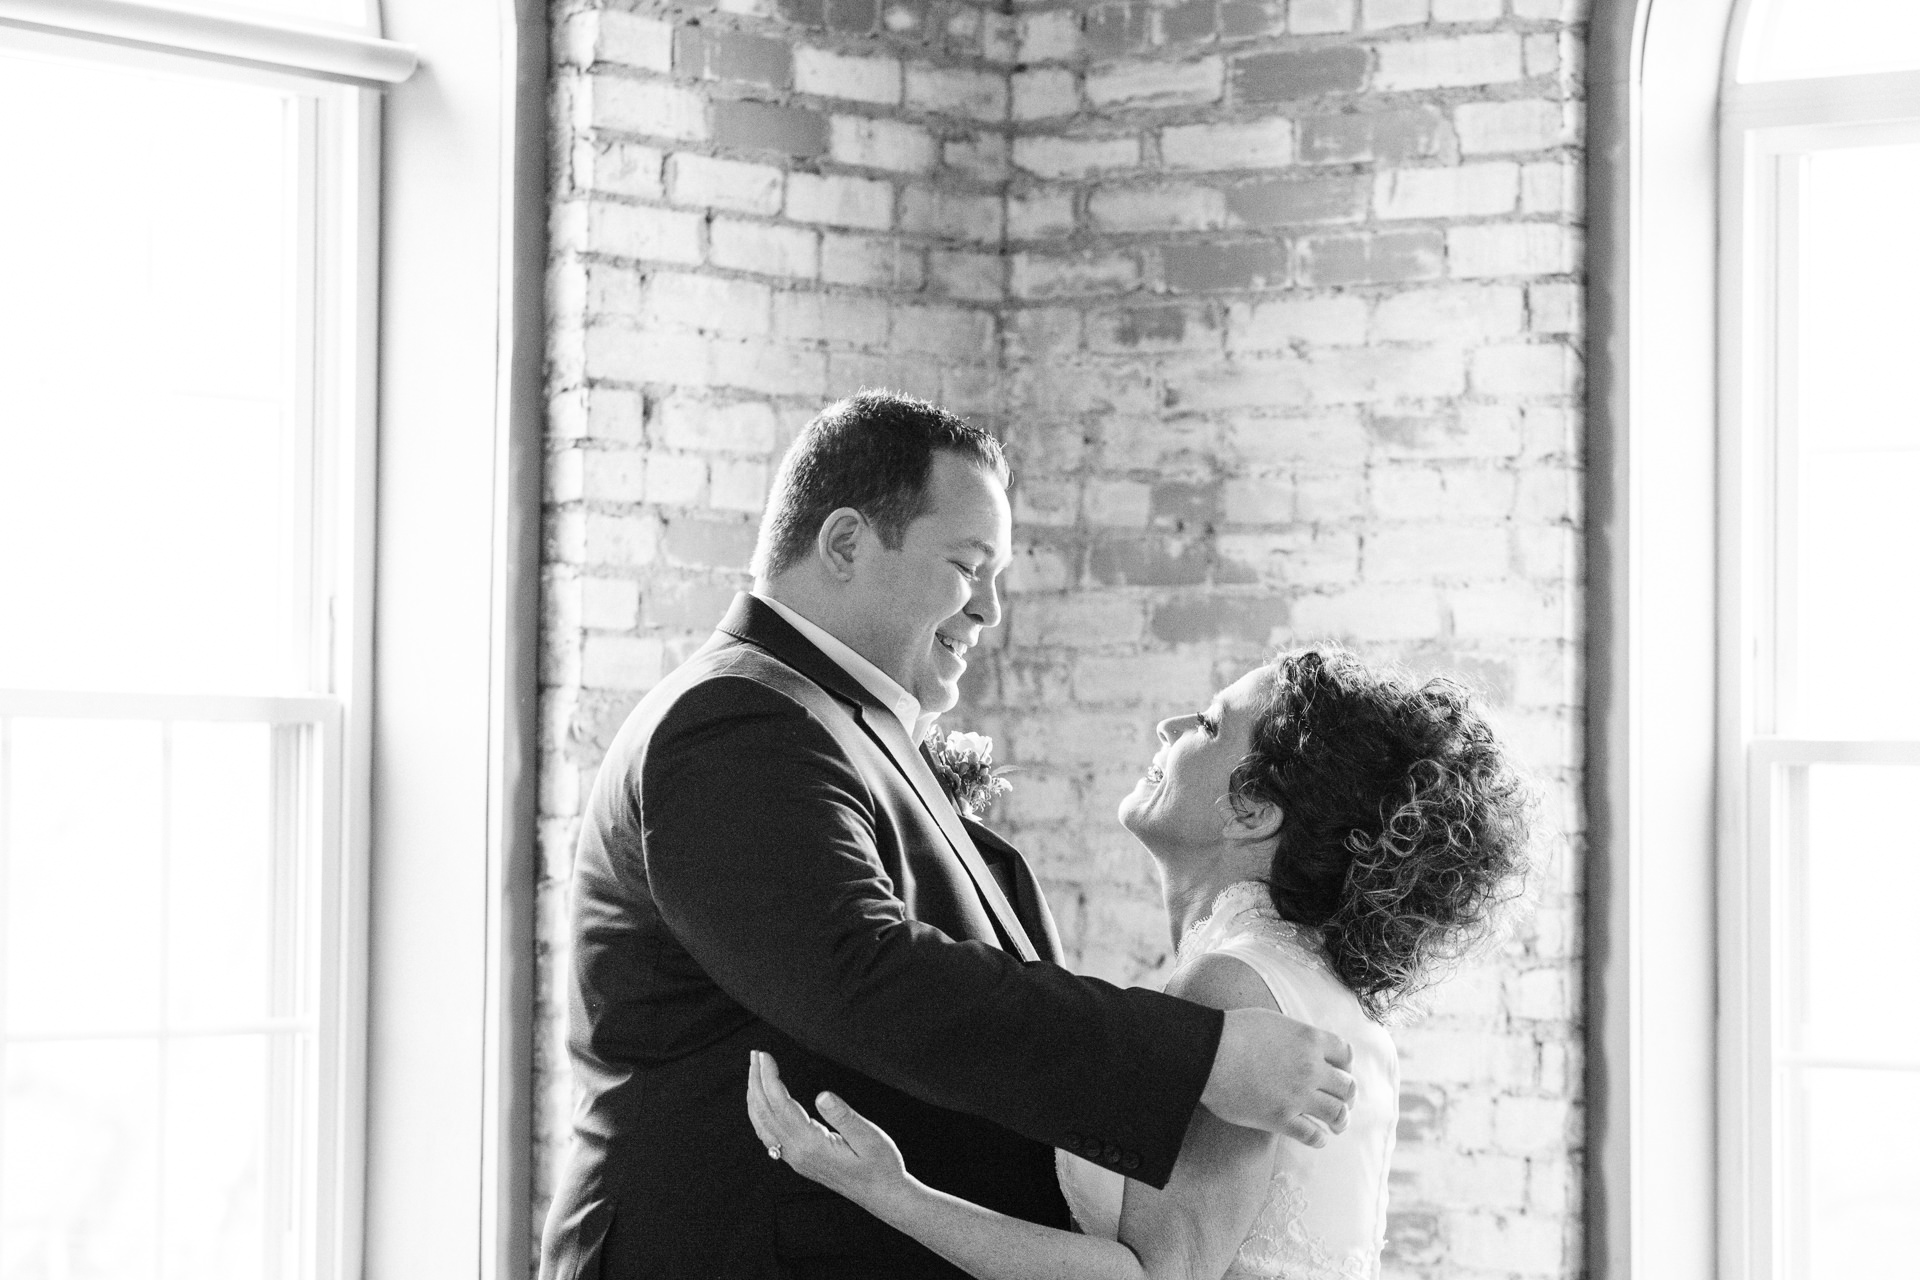 Grant Beachy wedding photographer goshen indiana elkhart south bend-020.jpg